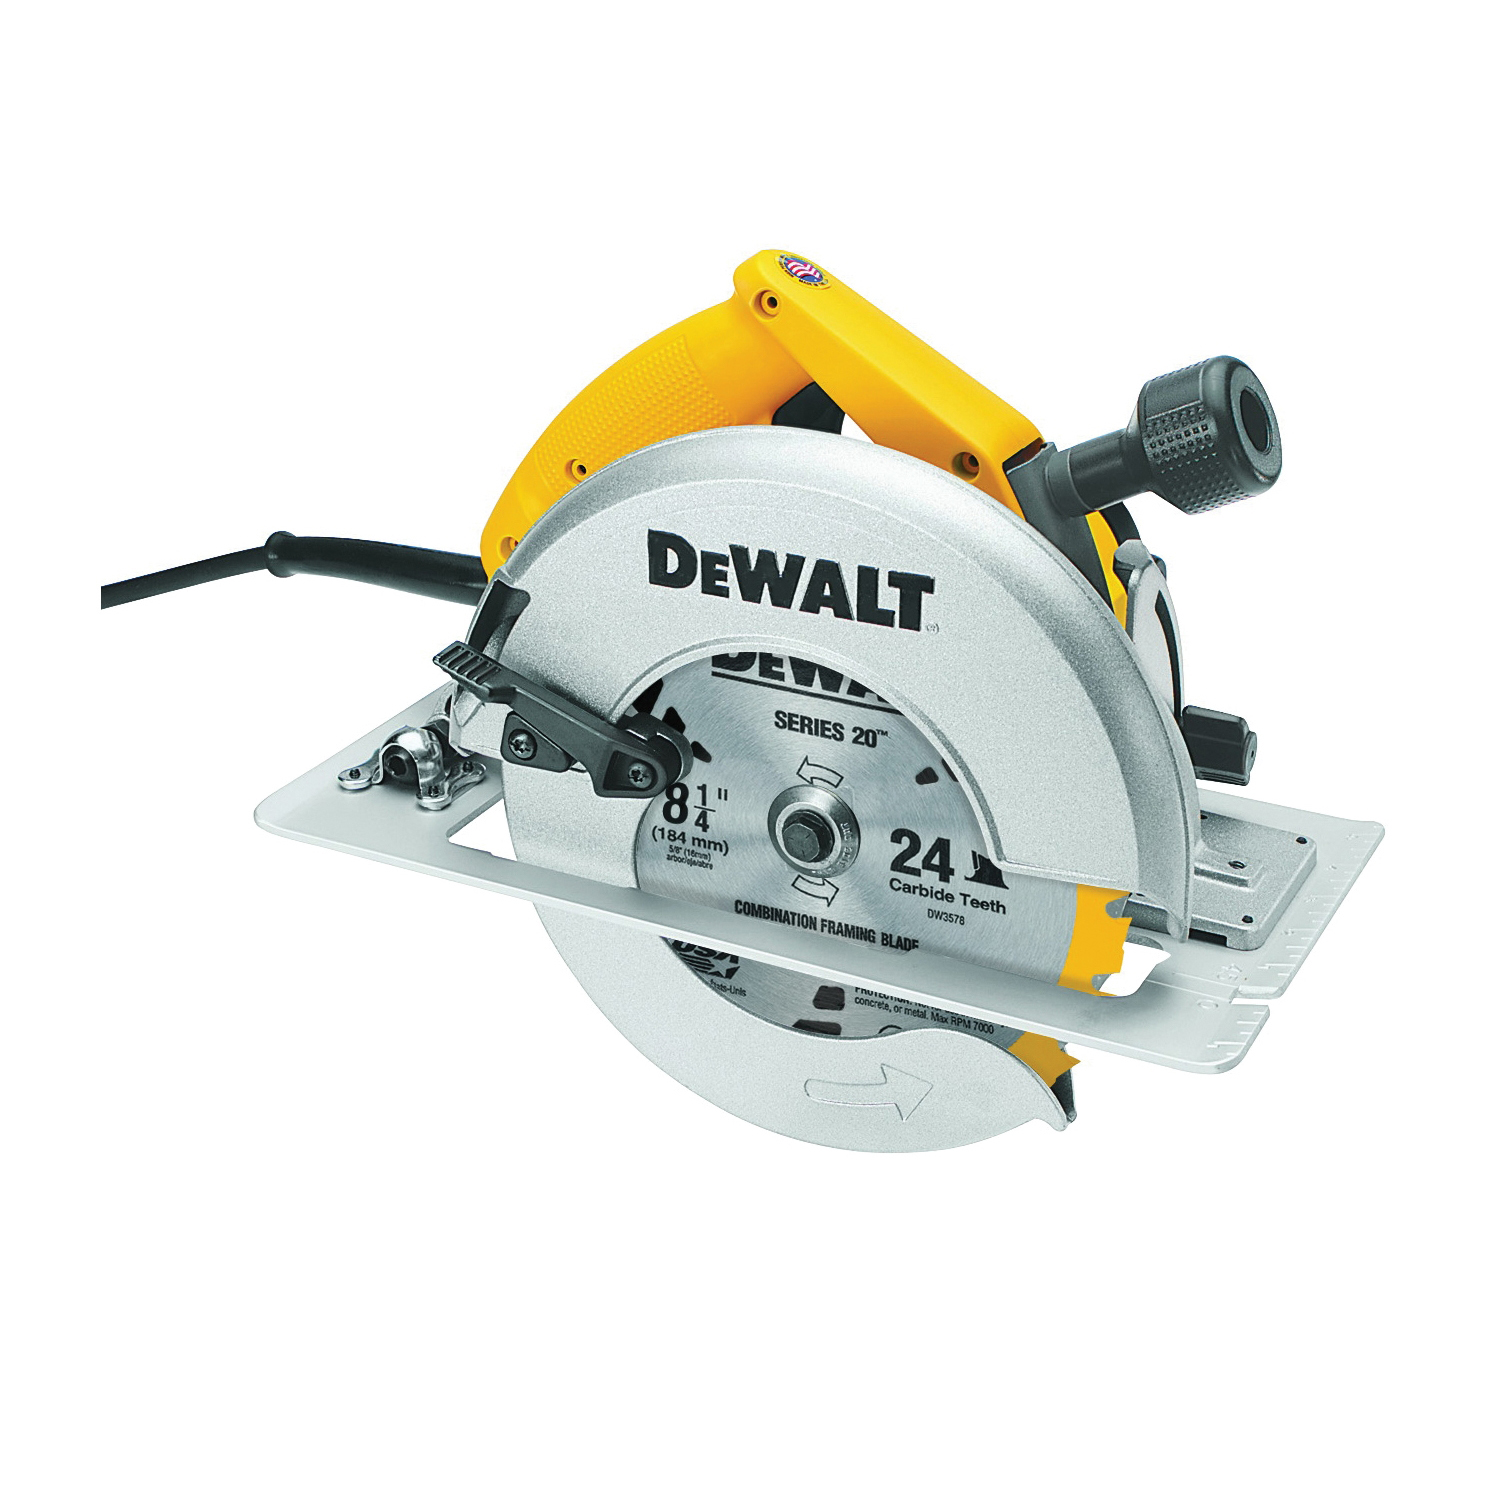 Picture of DeWALT DW384 Circular Saw, 120 V, 15 A, 2075 W, 8-1/4 in Dia Blade, 5/8 in Arbor, 50 deg Bevel